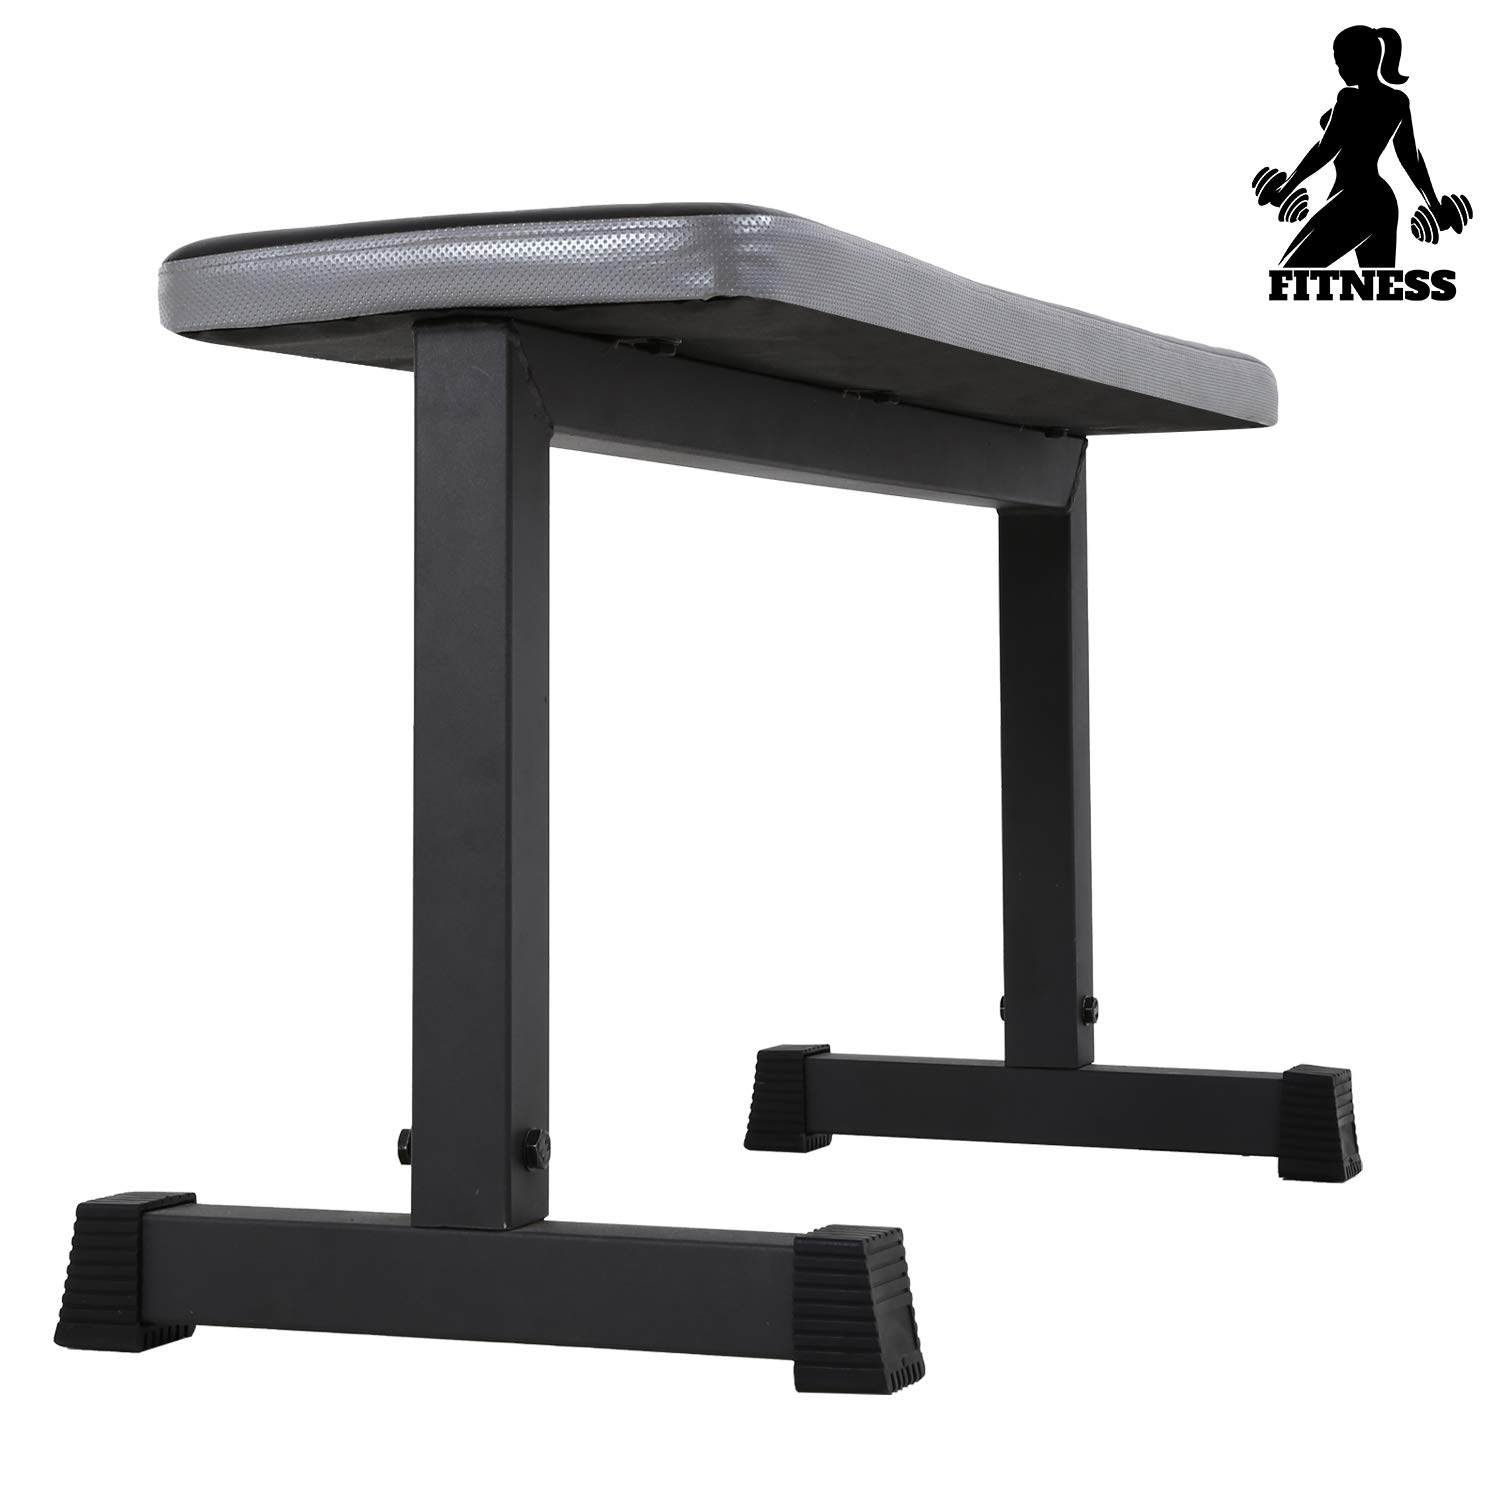 Flat Bench Workout Exercise Weightlifting Training Equipment Weight Bench for Home Gym Fitness,330lb Rated Capacity by FDW